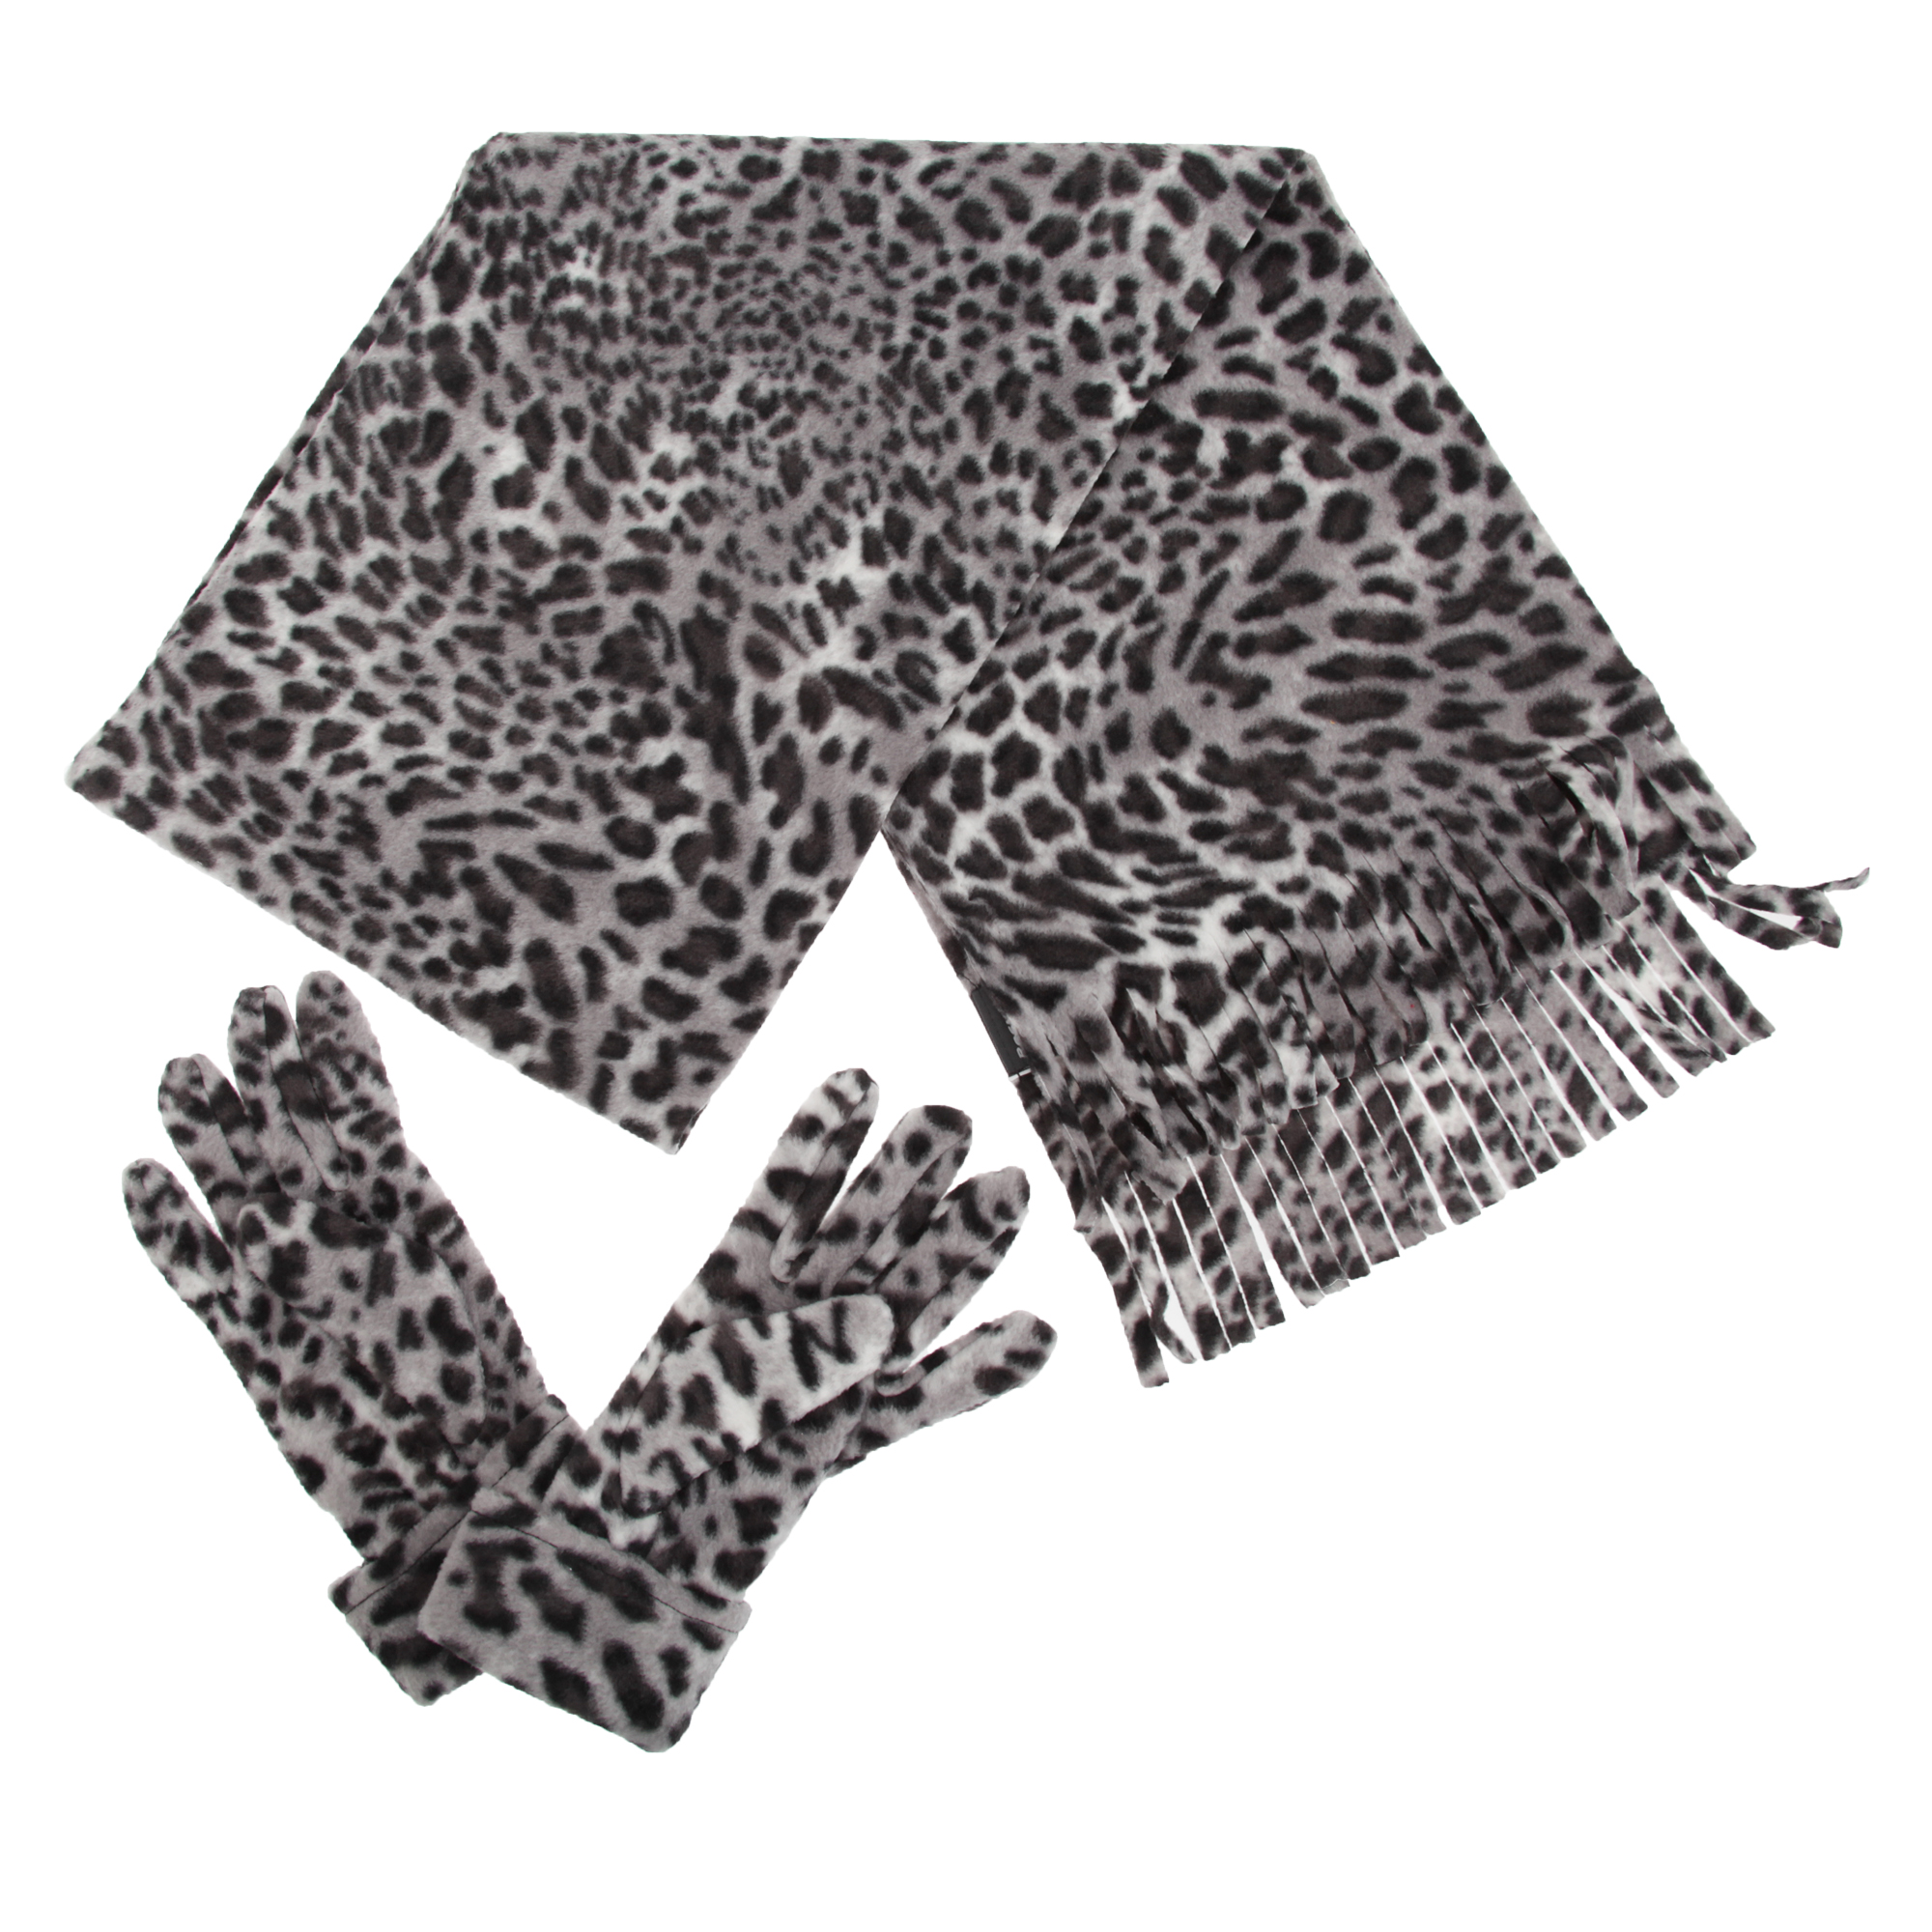 Leopard Print Scarves. invalid category id. Product - AM Landen Ladies Wool Velvet Soft All In One Soft Hood Hats Scarf Gloves(Black) Product Image. Price $ Marketplace items (products not sold by cheswick-stand.tk), and items with freight charges are not eligible for ShippingPass.